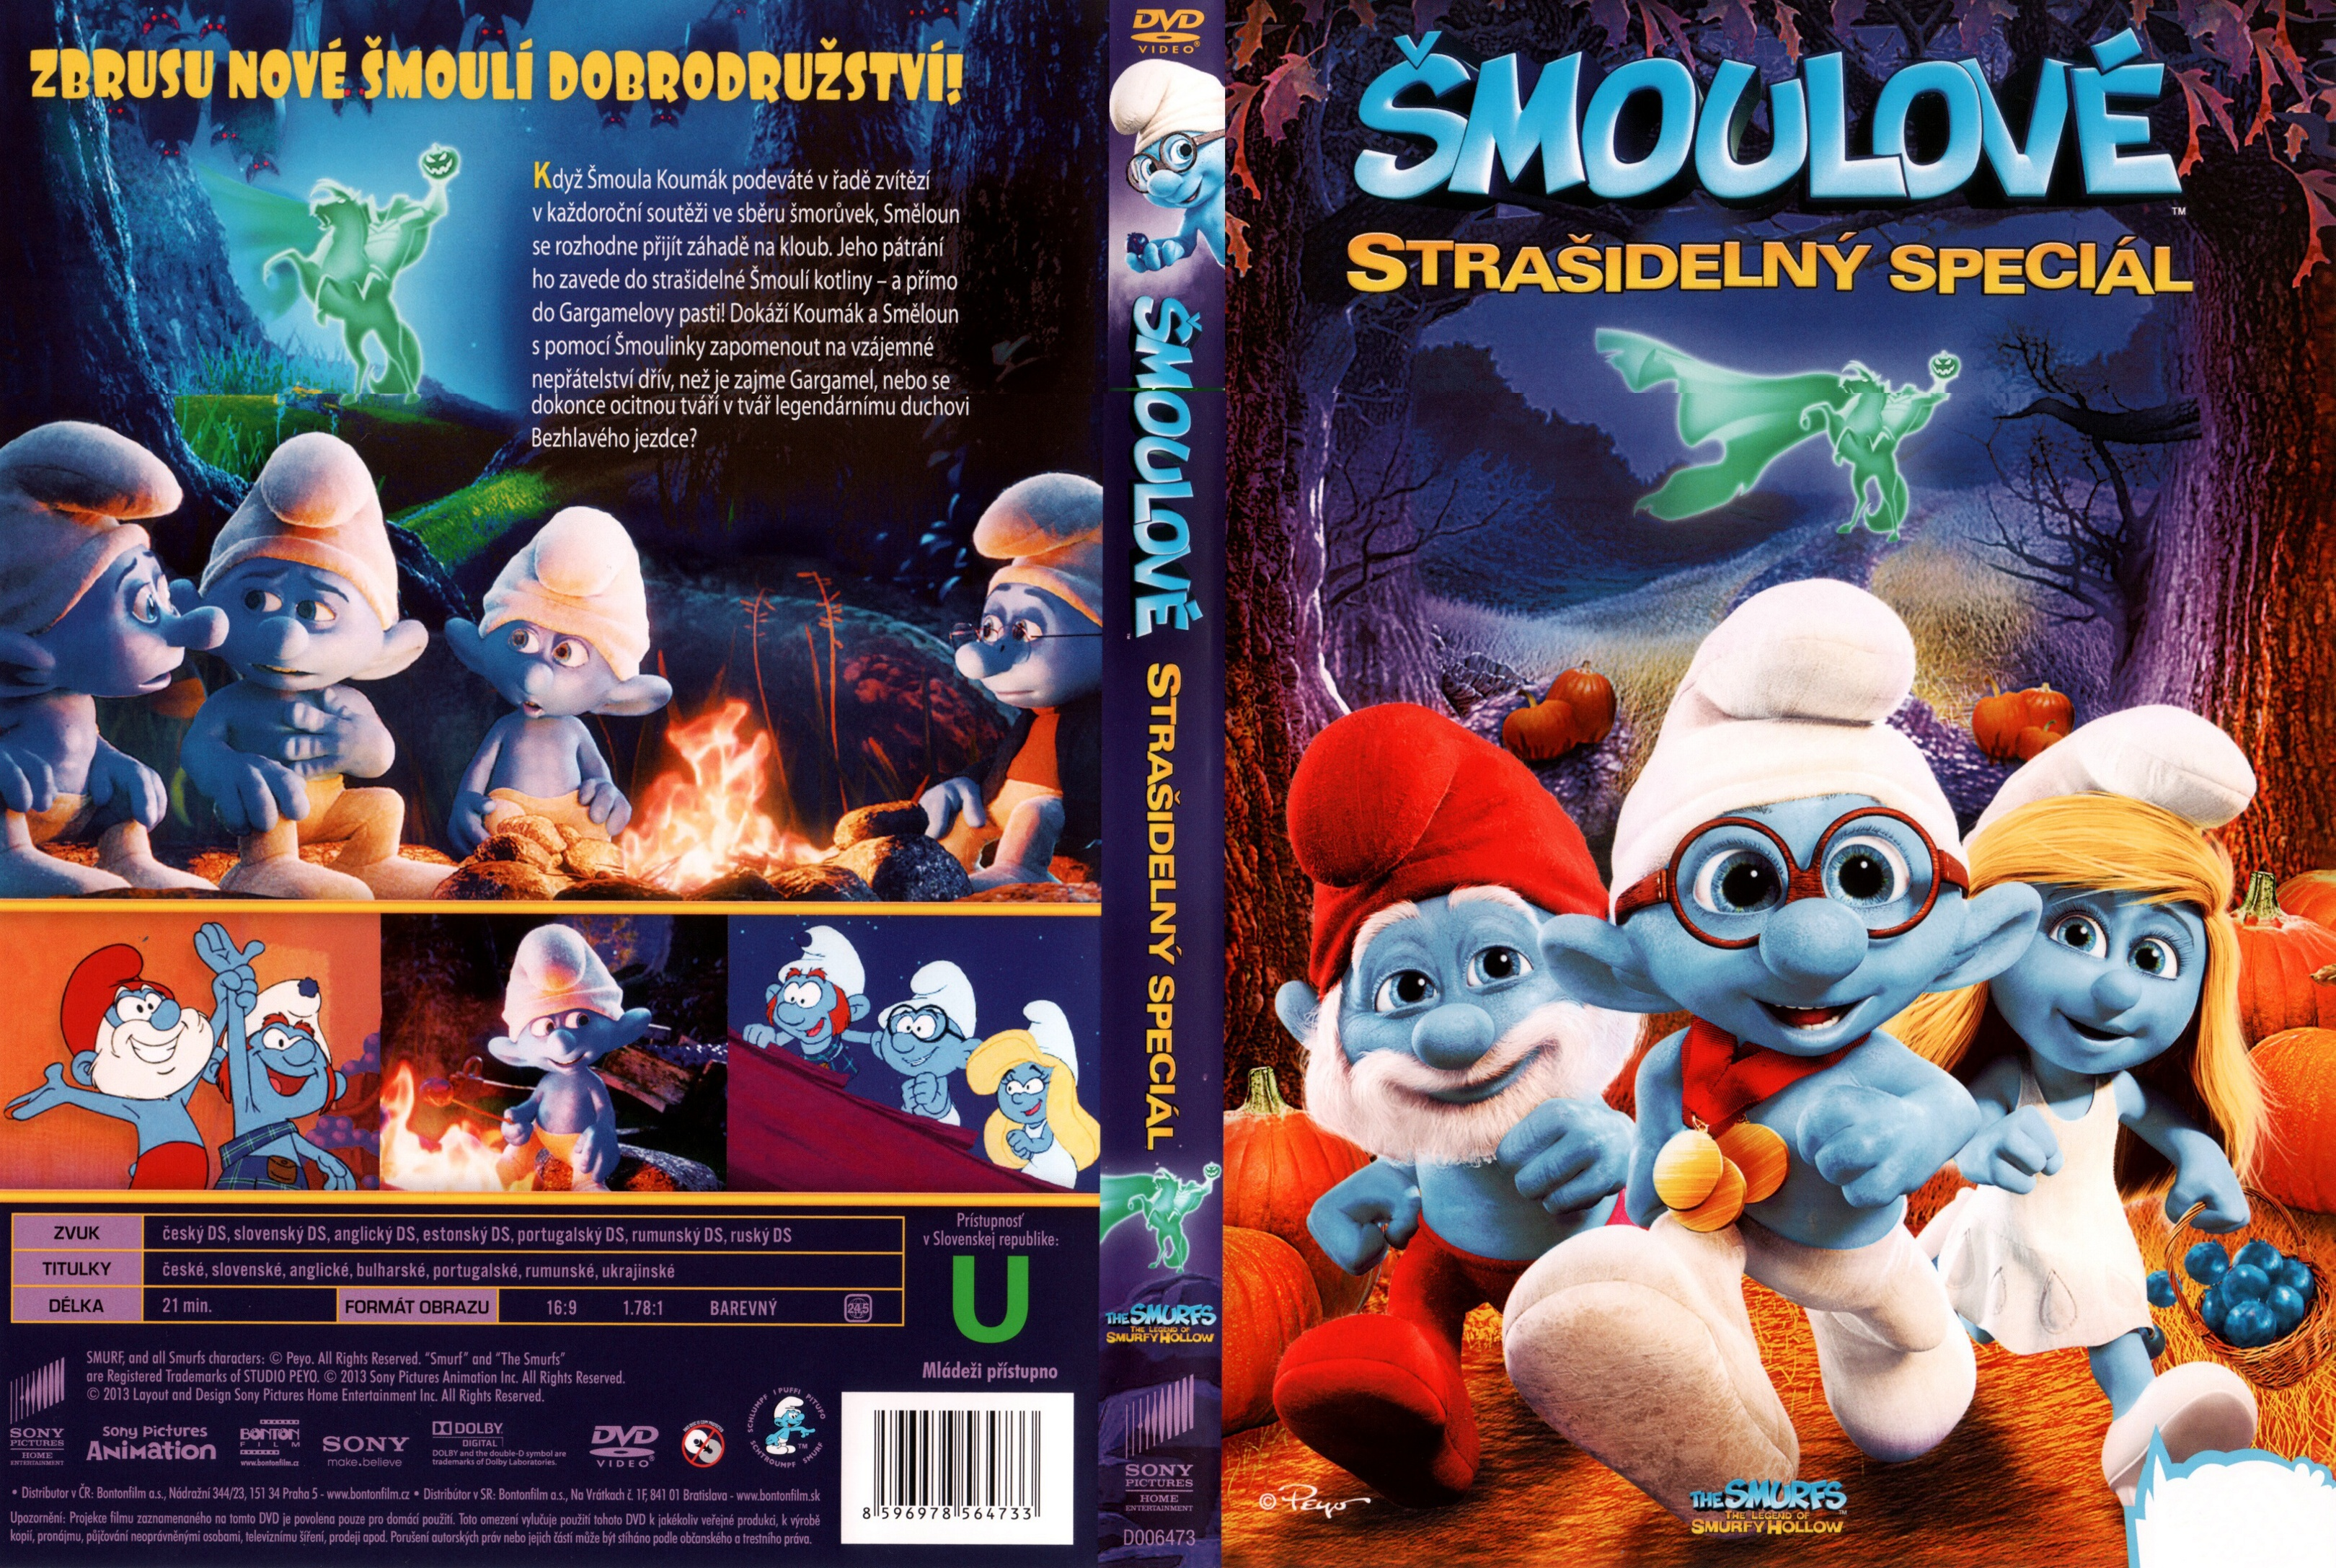 opening to the smurfs the legend of smurfy hollow 2013 dvd